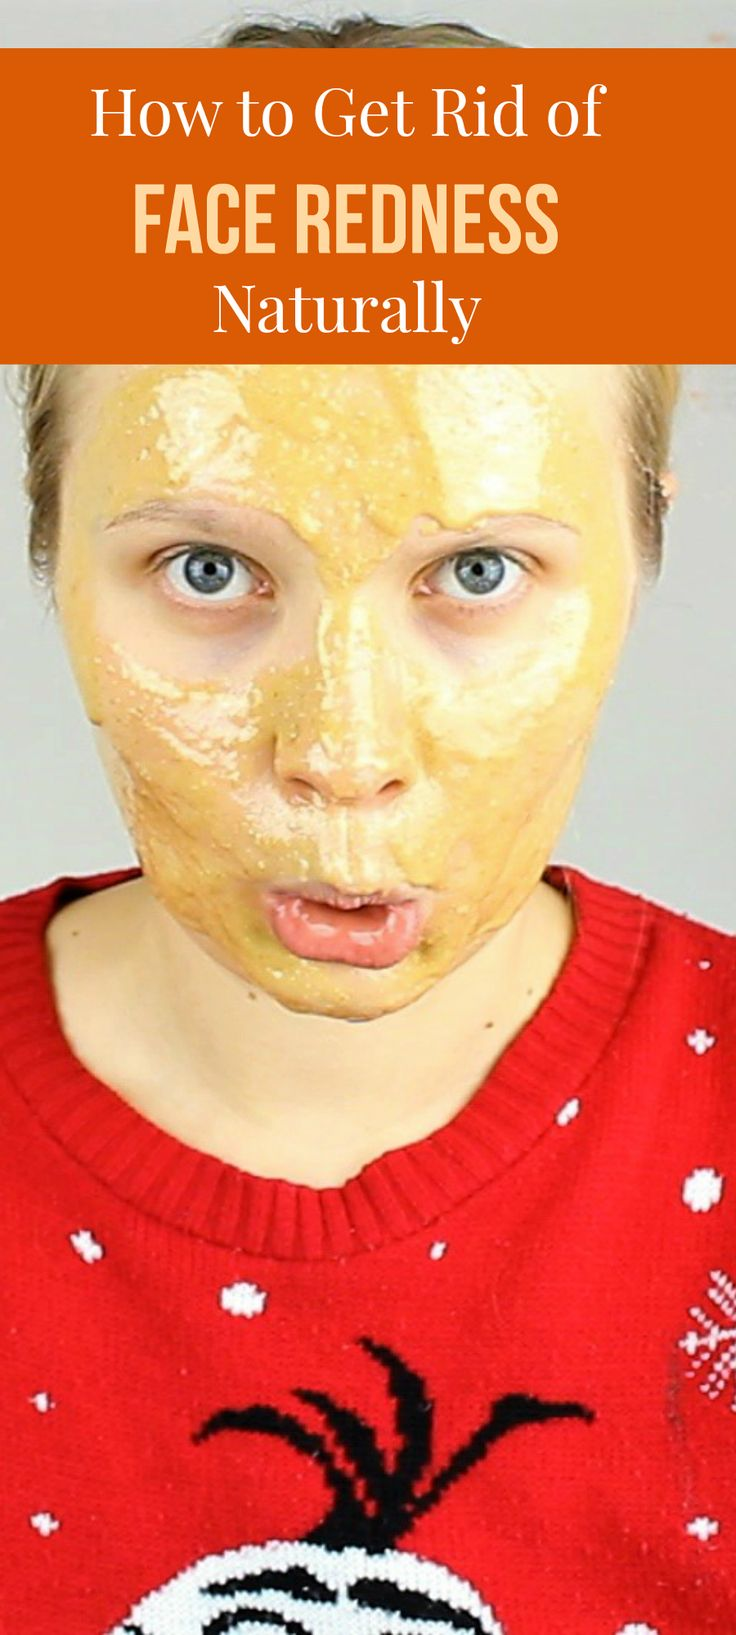 How to Get Rid of Redness Naturally?(A few DIY Natural Masks to try too). how to get rid of redness, how to get rid of redness on face, how to reduce redness on face, how to reduce face redness, redness on face, how to reduce redness on face fast, how to reduce facial redness,face skincare, diy face mask, cucumber face mask, honey face mask, oatmeal face mask, reduce face redness, red face, face care, skin care, skin care tips, face care tips, taking care of your face, facial tips